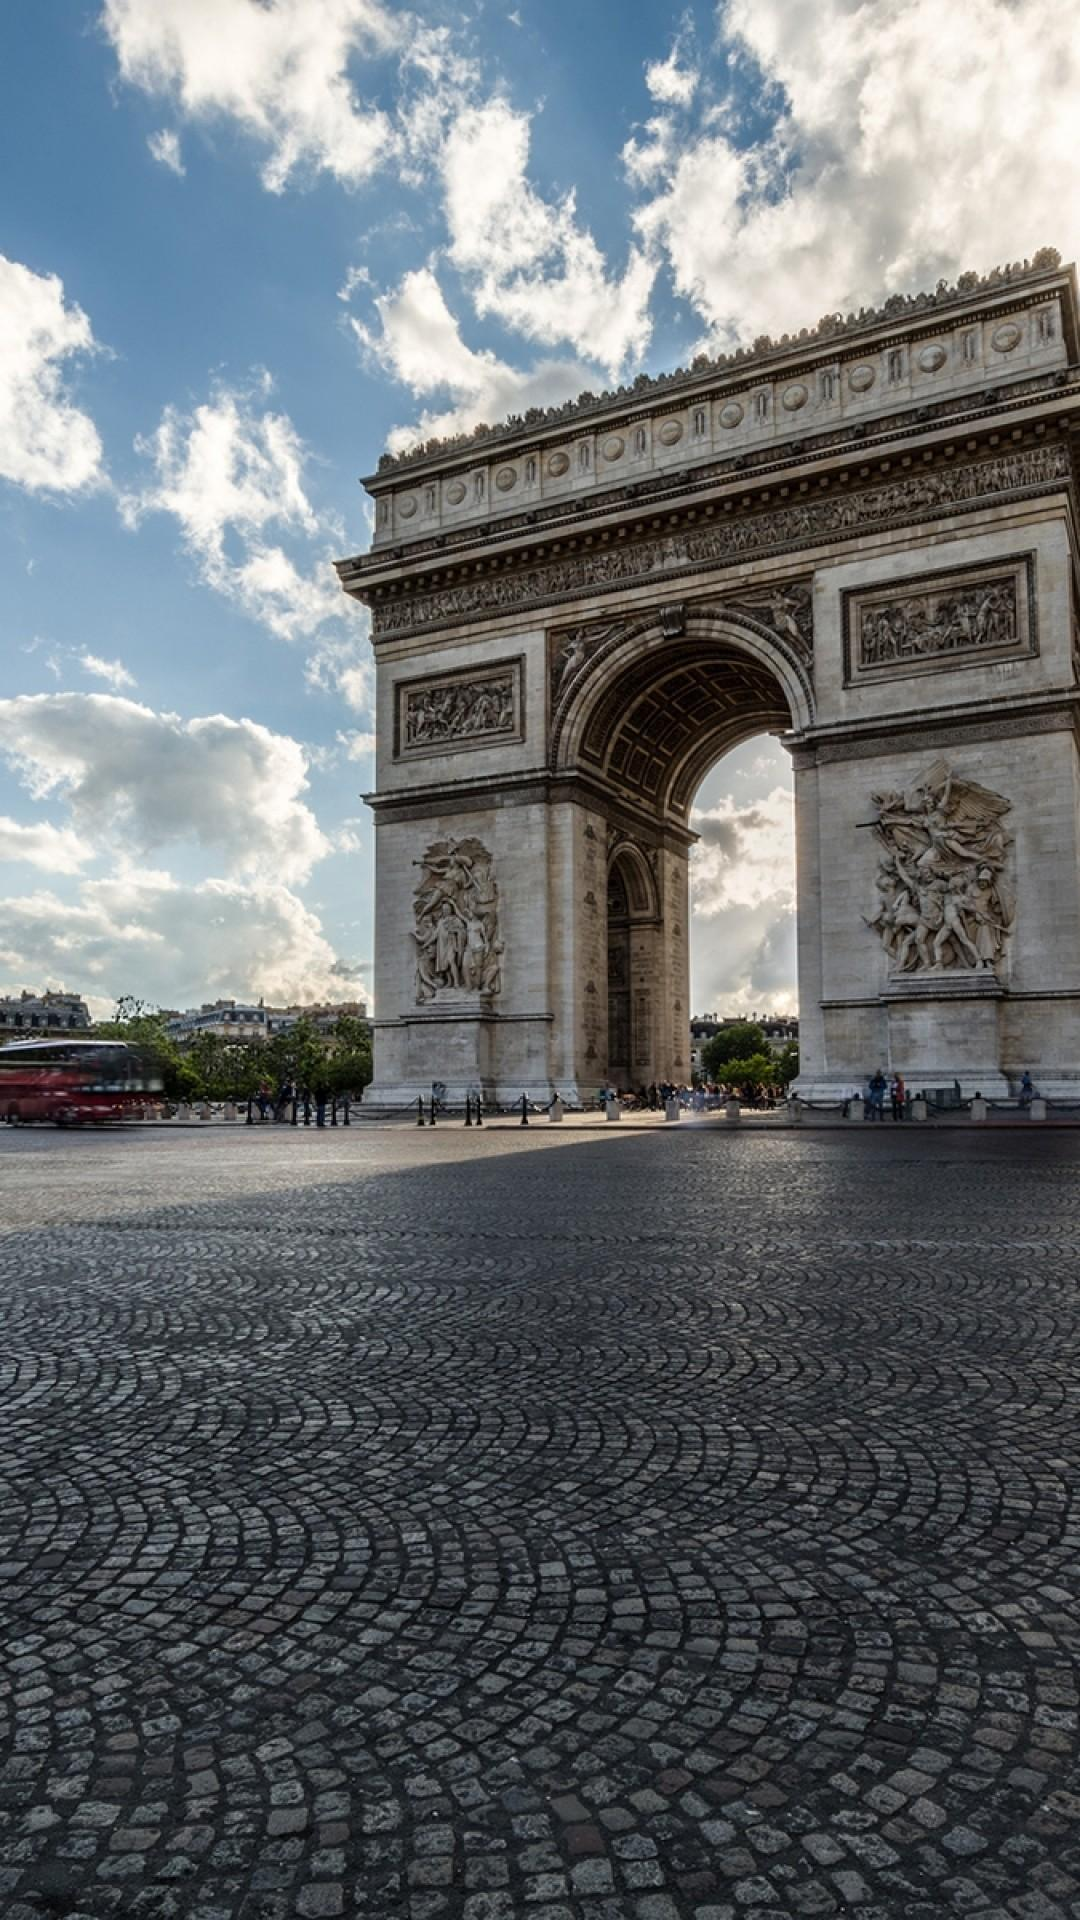 Download 1080x1920 Arc De Triomphe, France, Paris, Sky, Clouds